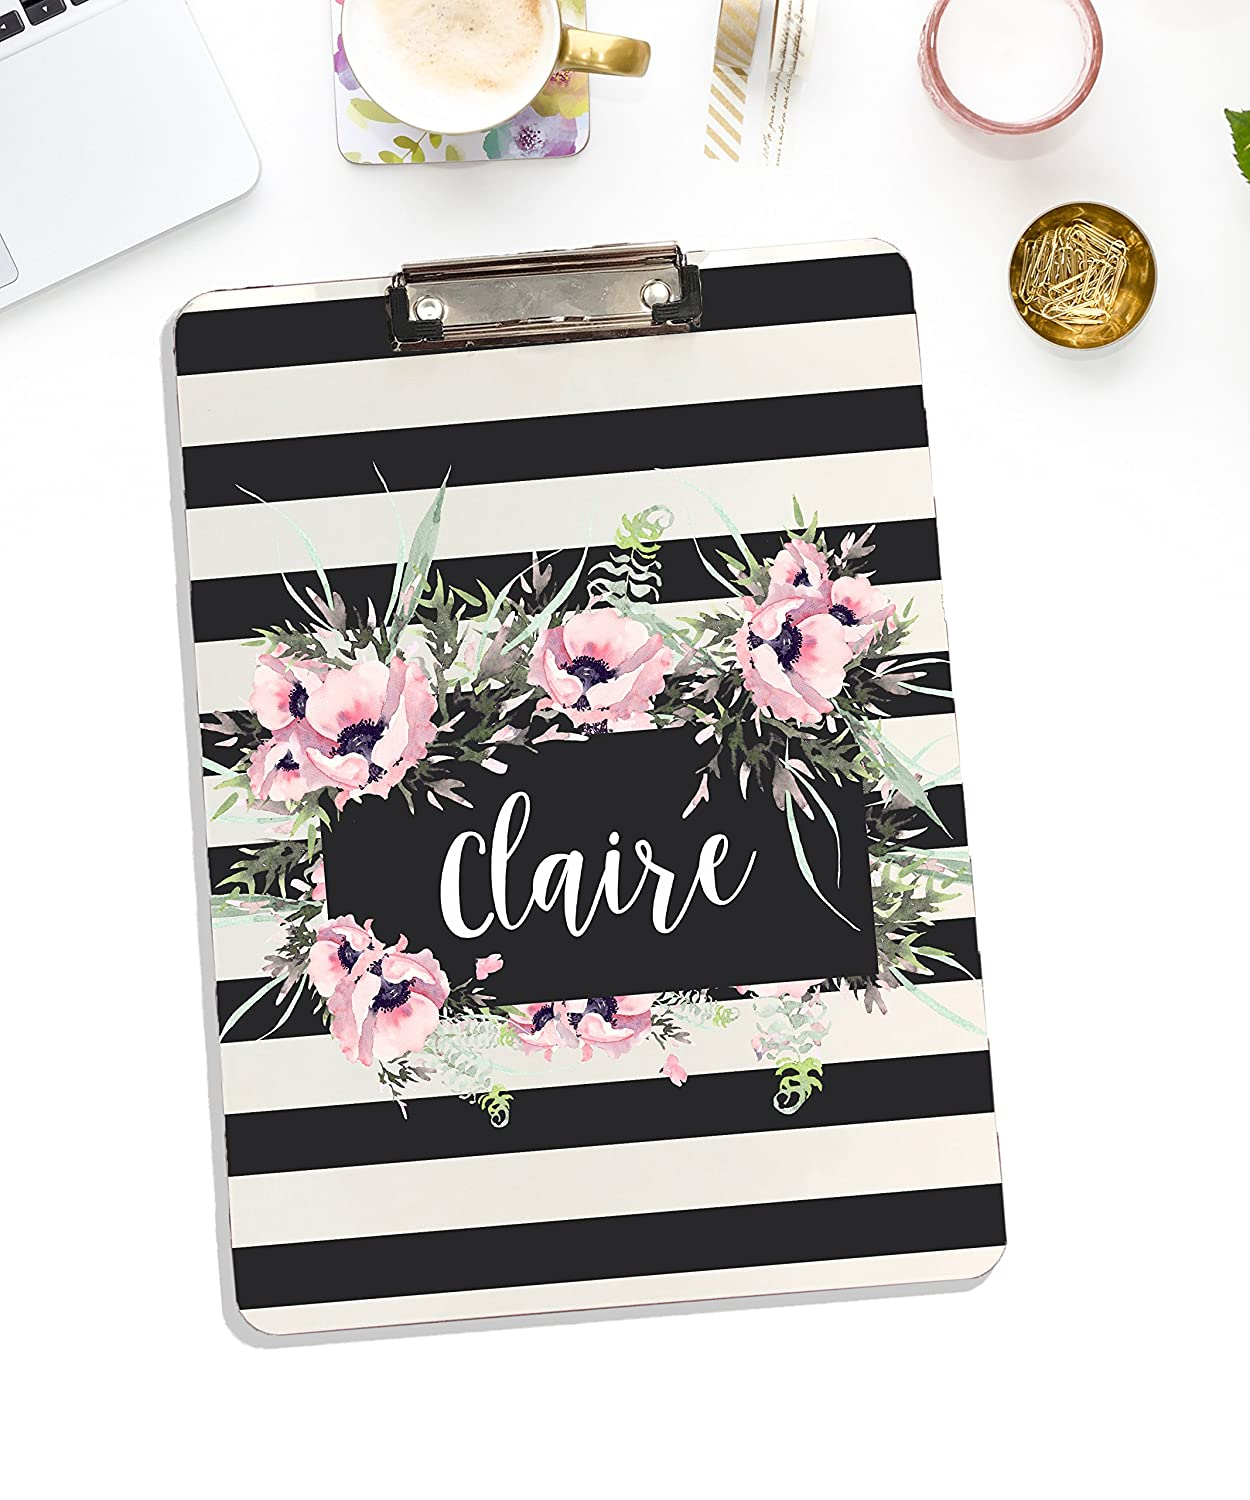 Whiteboard Personalized Clipboard With Flower Design